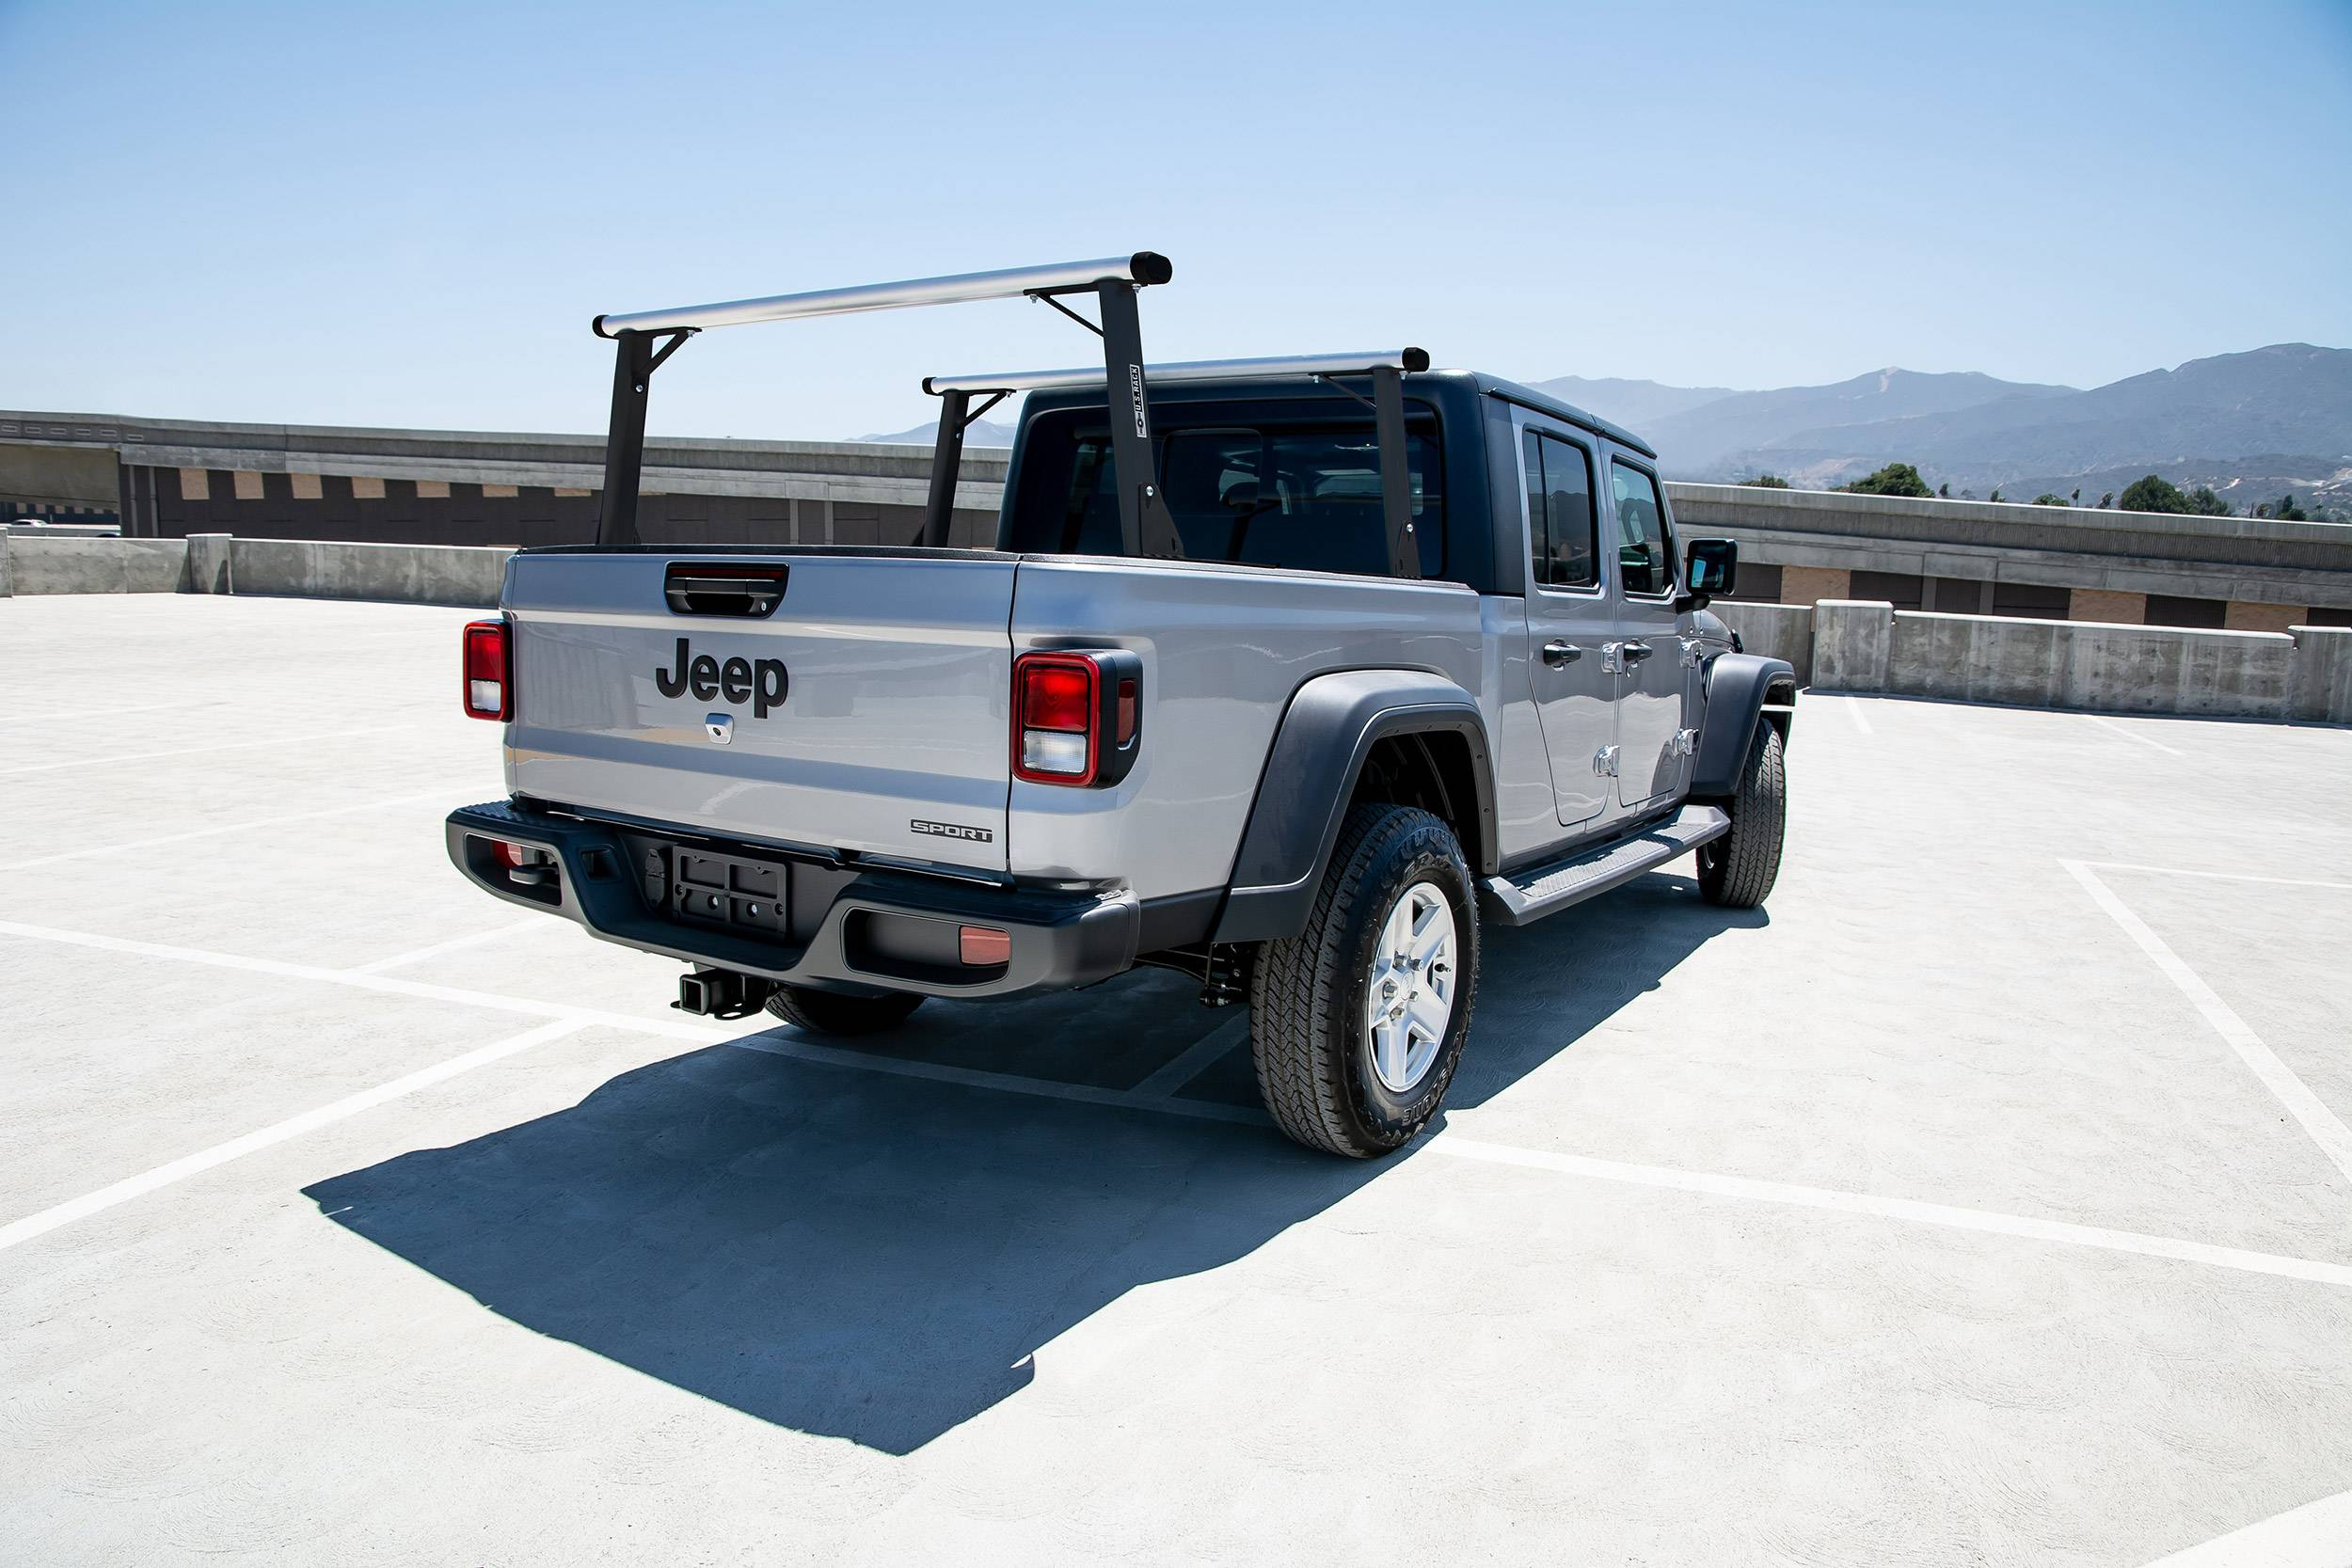 2020-2021 Jeep Gladiator Clipper Truck Rack, Fleetside, Track System, Cab Height, Brushed Cross Bar, Black Legs and Base - PN #82240252